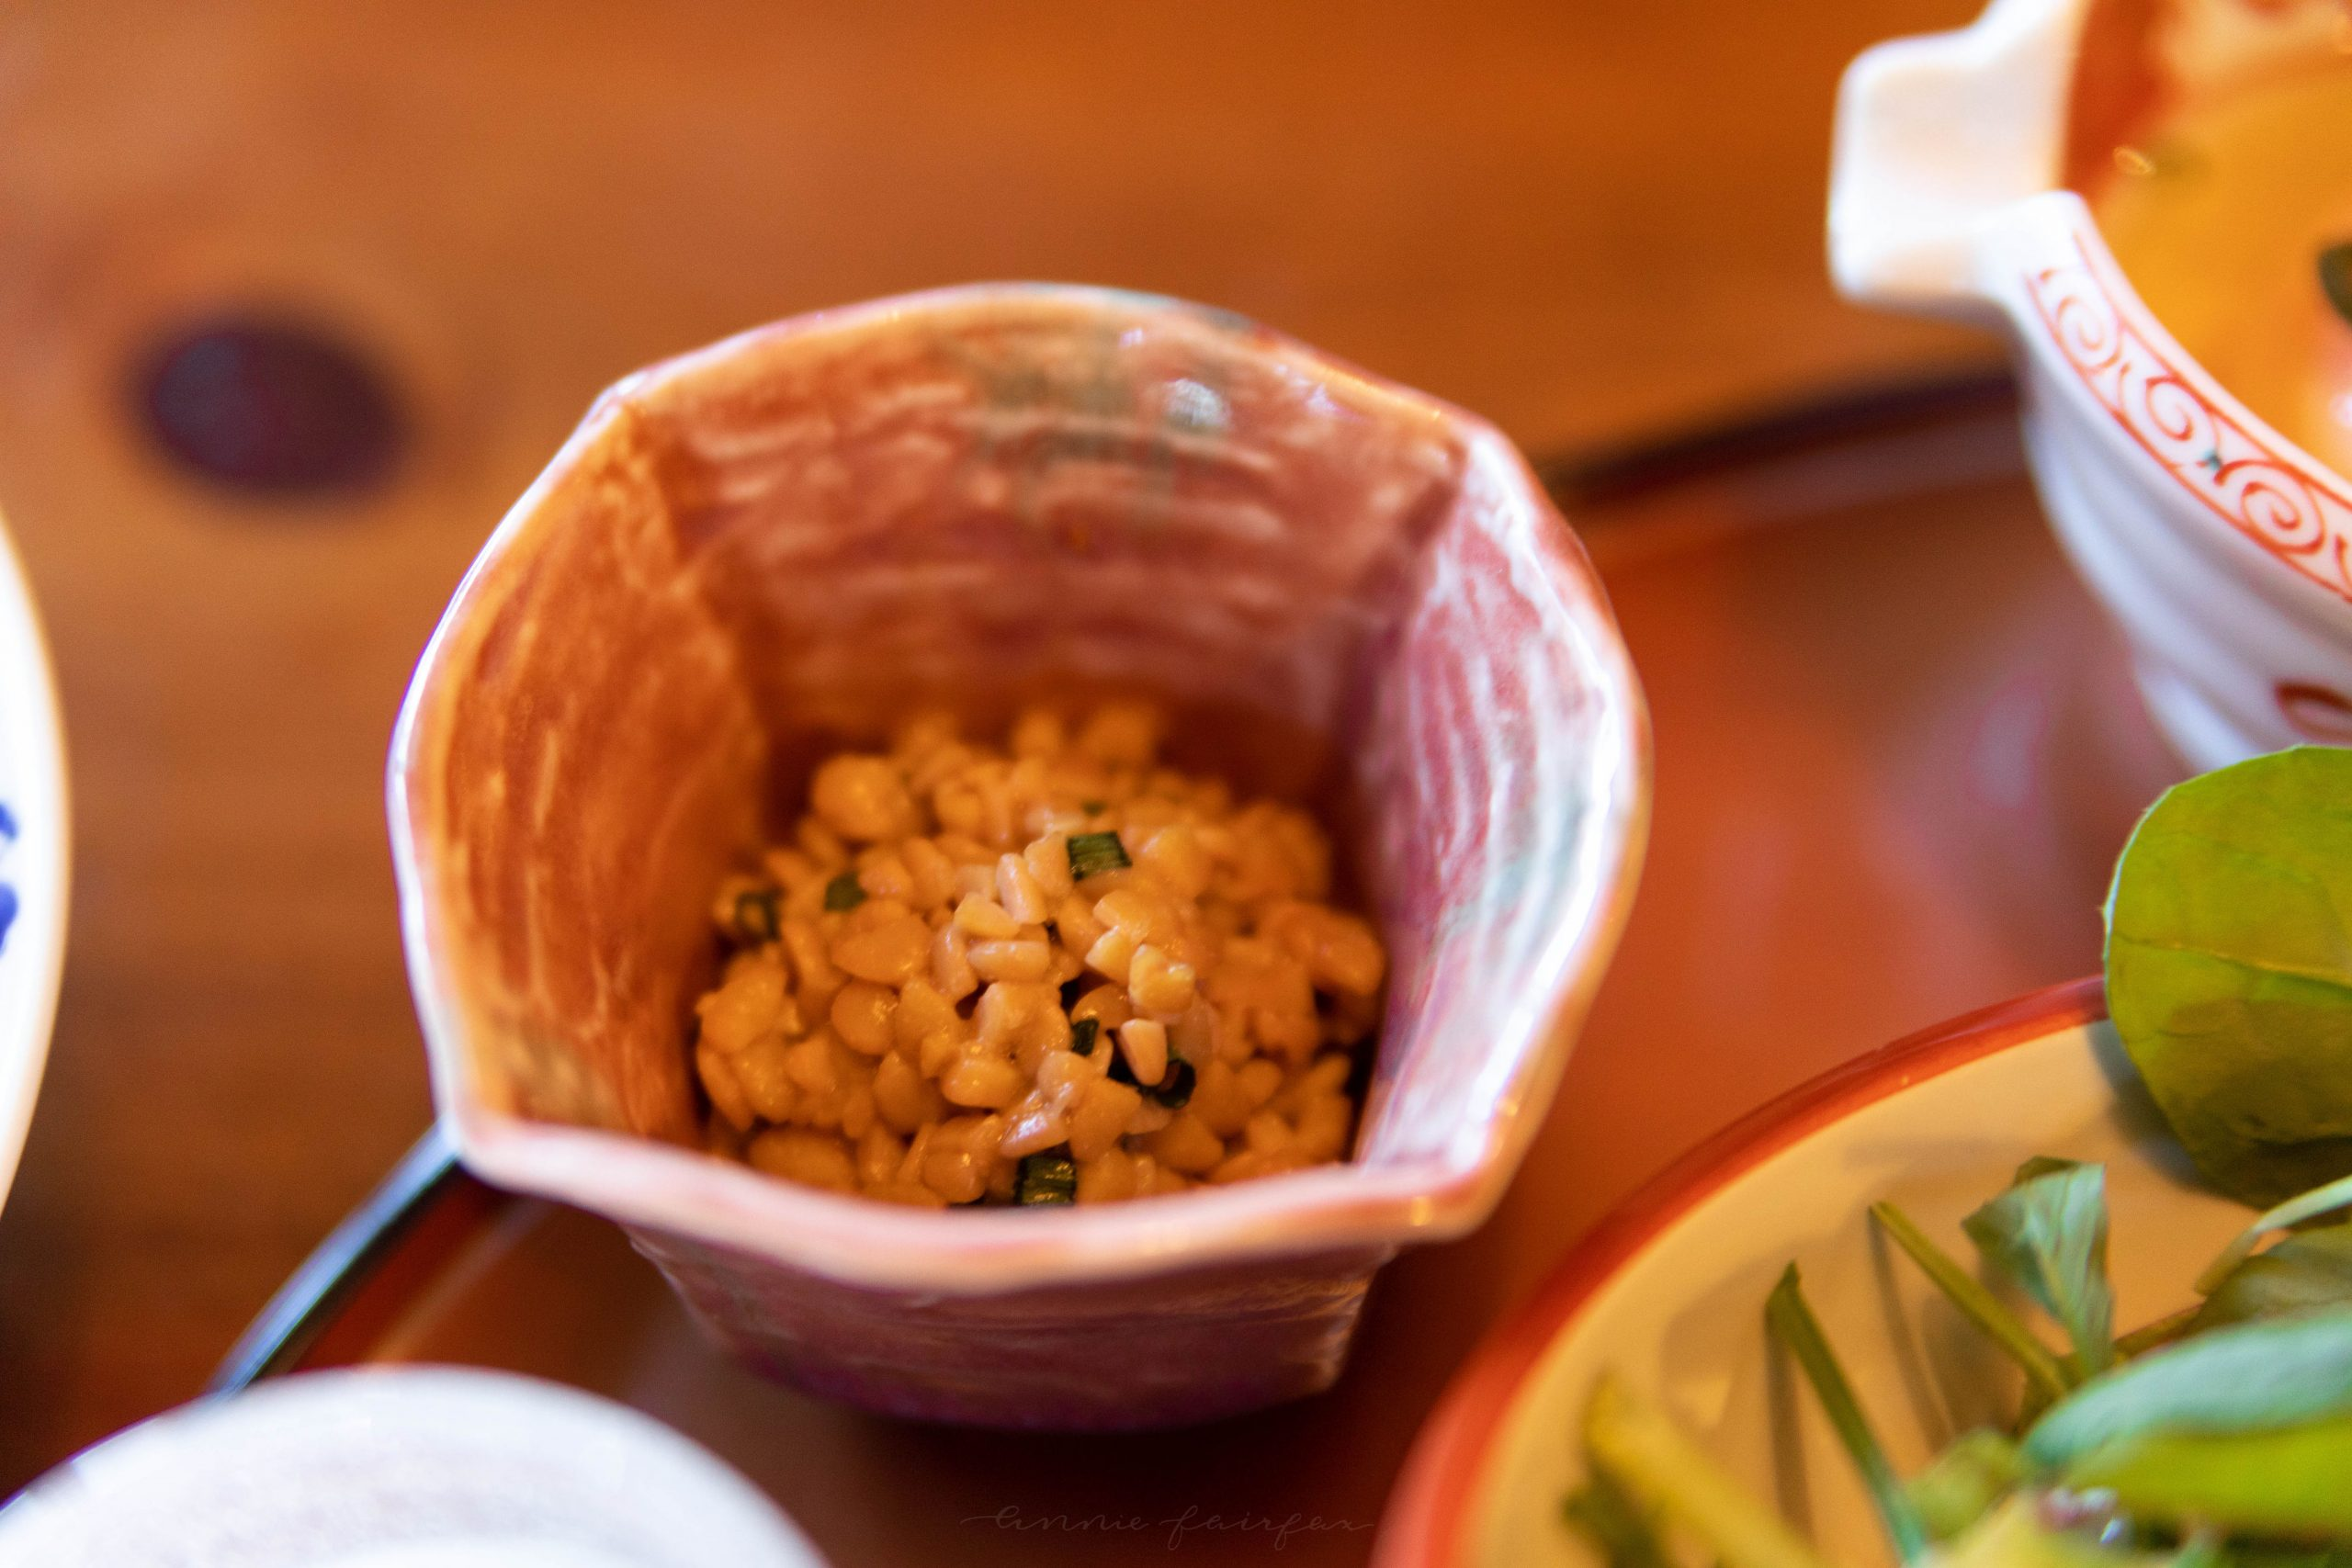 Nattō at Kurokawa Onsen by Annie Fairfax Quintessential Japanese Foods You Need To Try in Japan